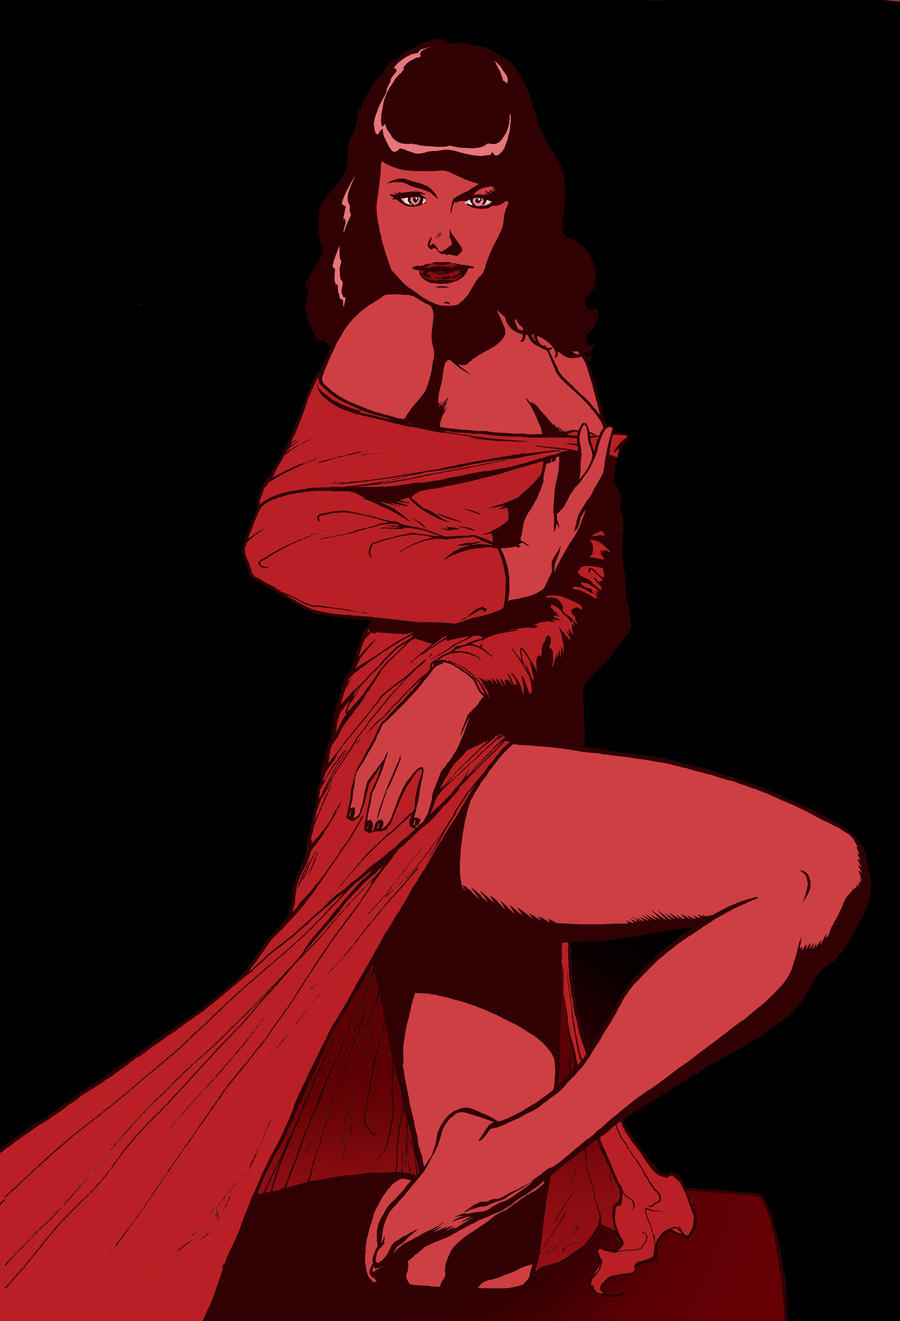 Bettie Page Color By Agustin M On Deviantart Bettie Page Color